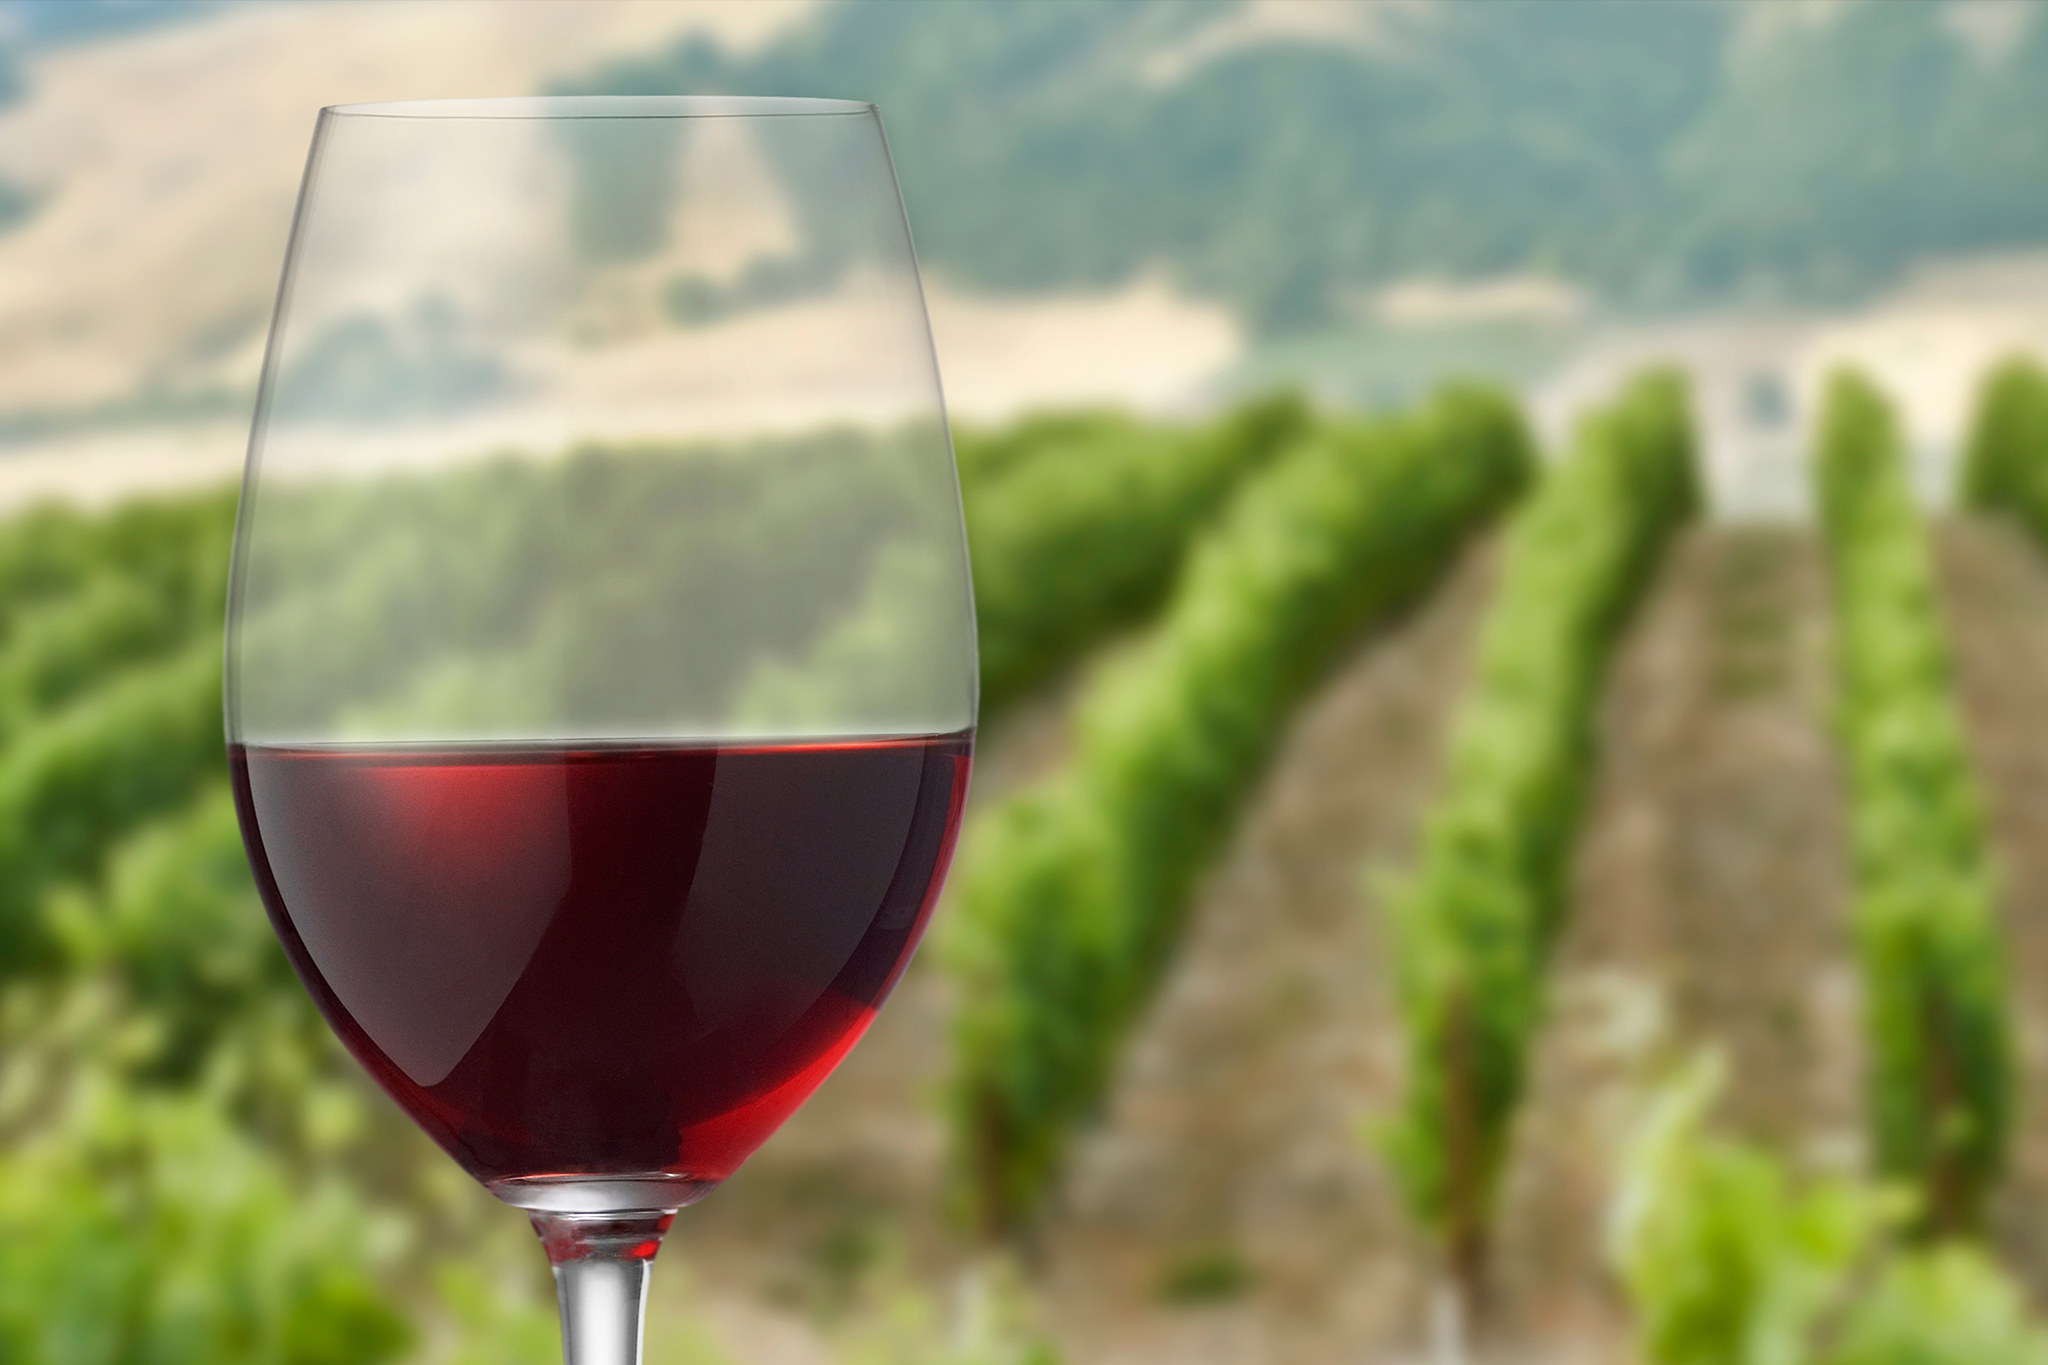 A winemaker's guide to choosing a good wine